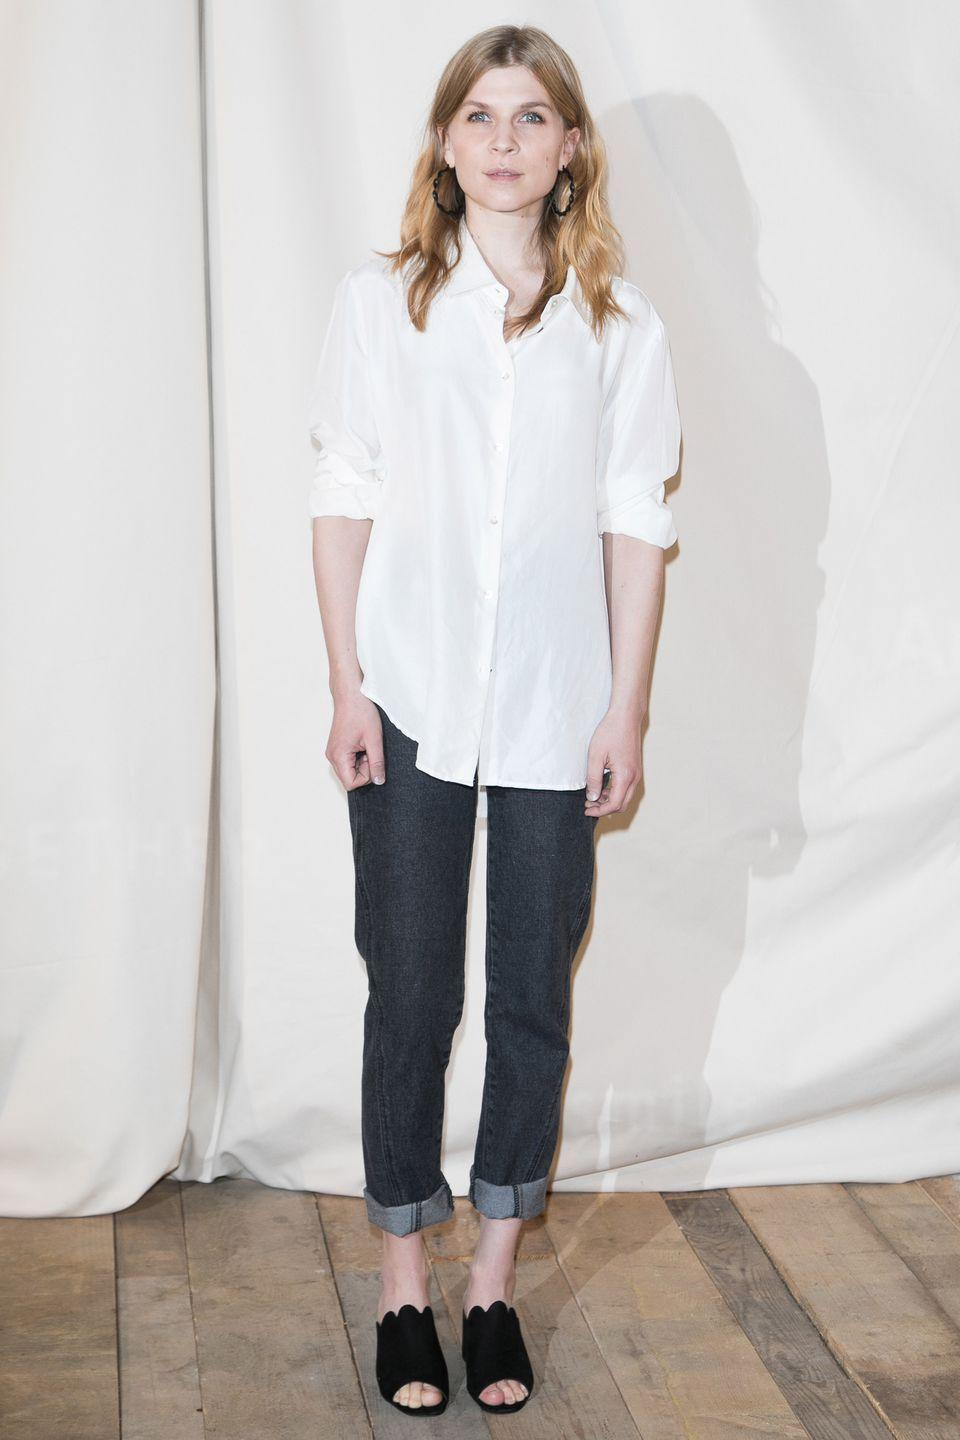 <p>Open-toed mules can provide the perfect transition into strappy sandals. Wear with jeans and a simple white shirt for an offbeat feel.</p>